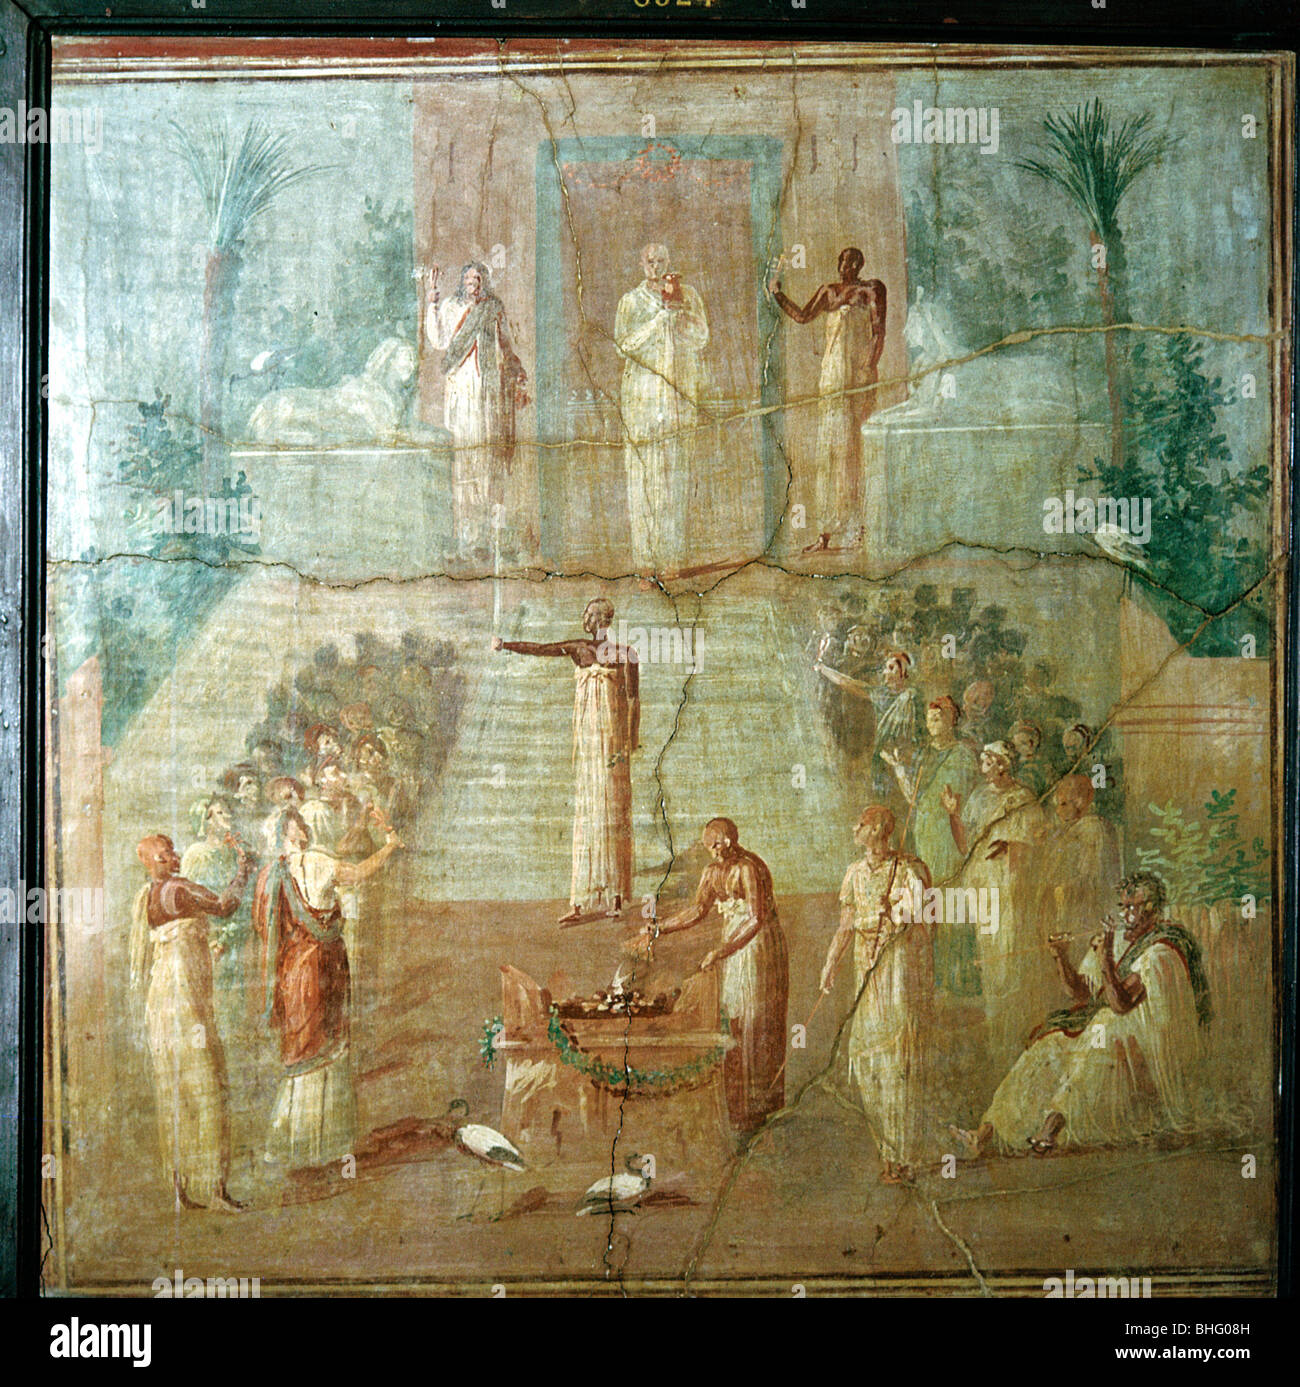 ancient roman priest stock photos ancient roman priest stock roman wallpainting showing priests of isis performing their ceremony herculaneum italy stock